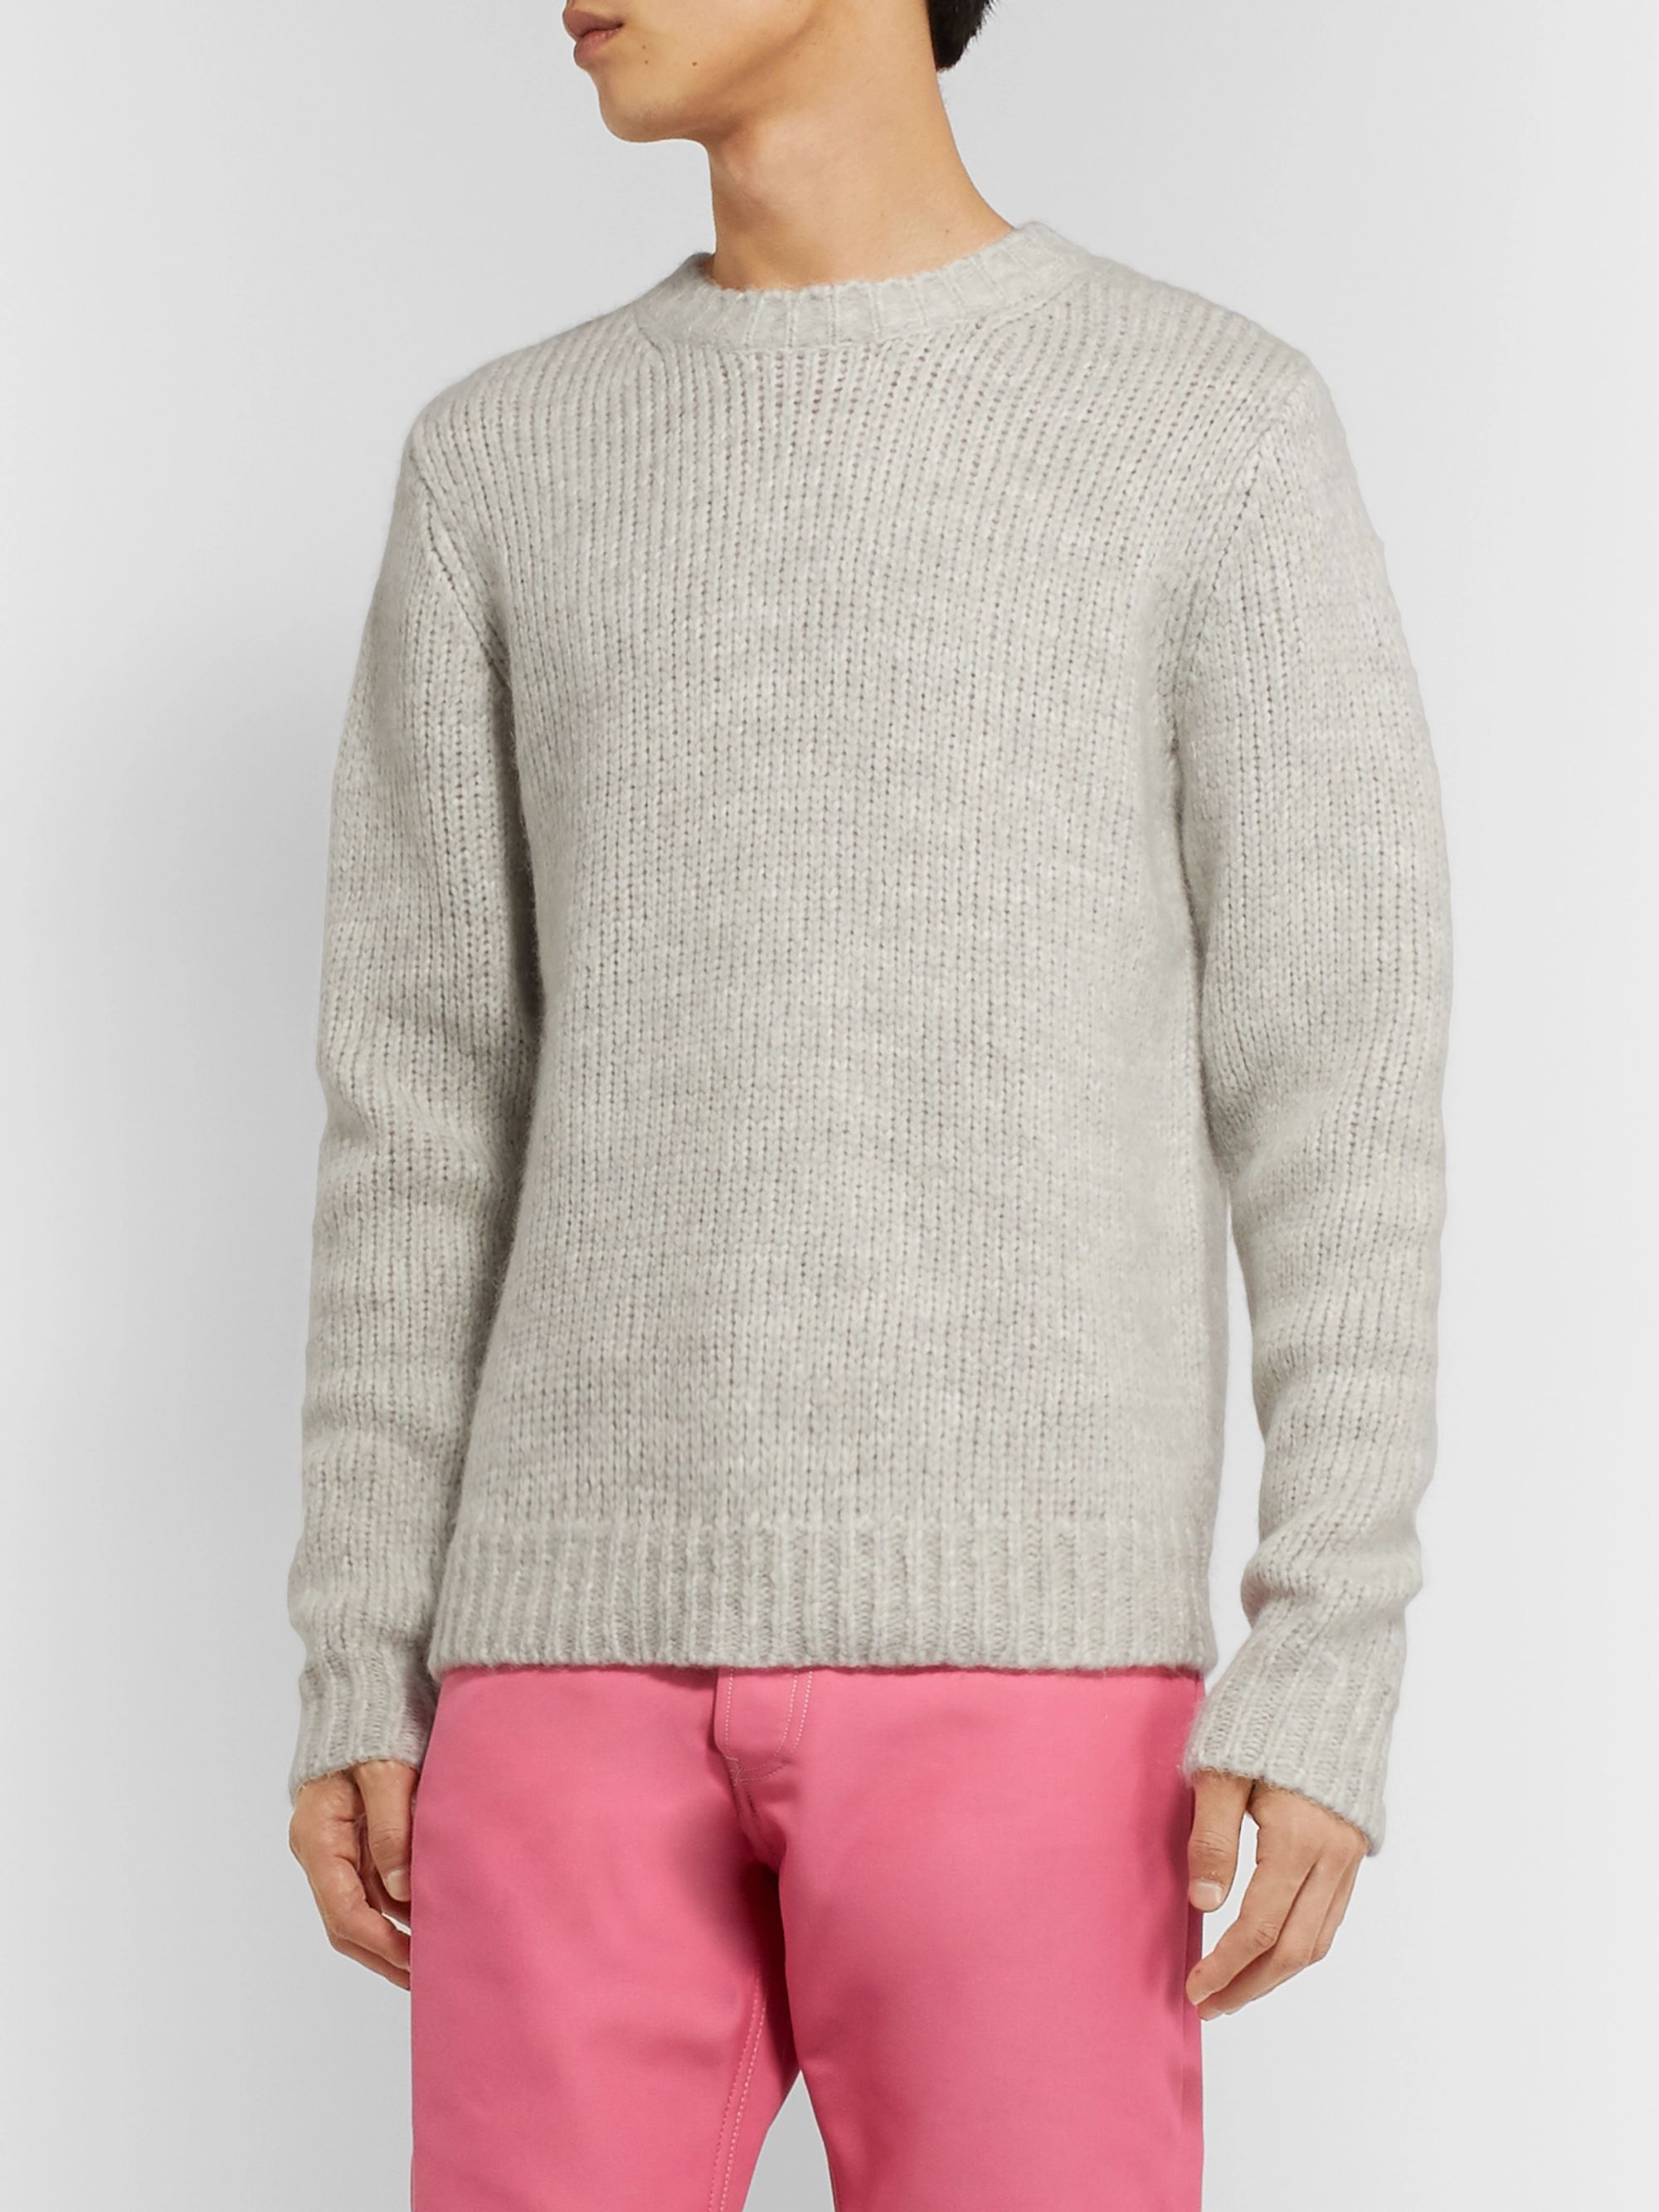 Helmut Lang Ribbed Mélange Knitted Sweater